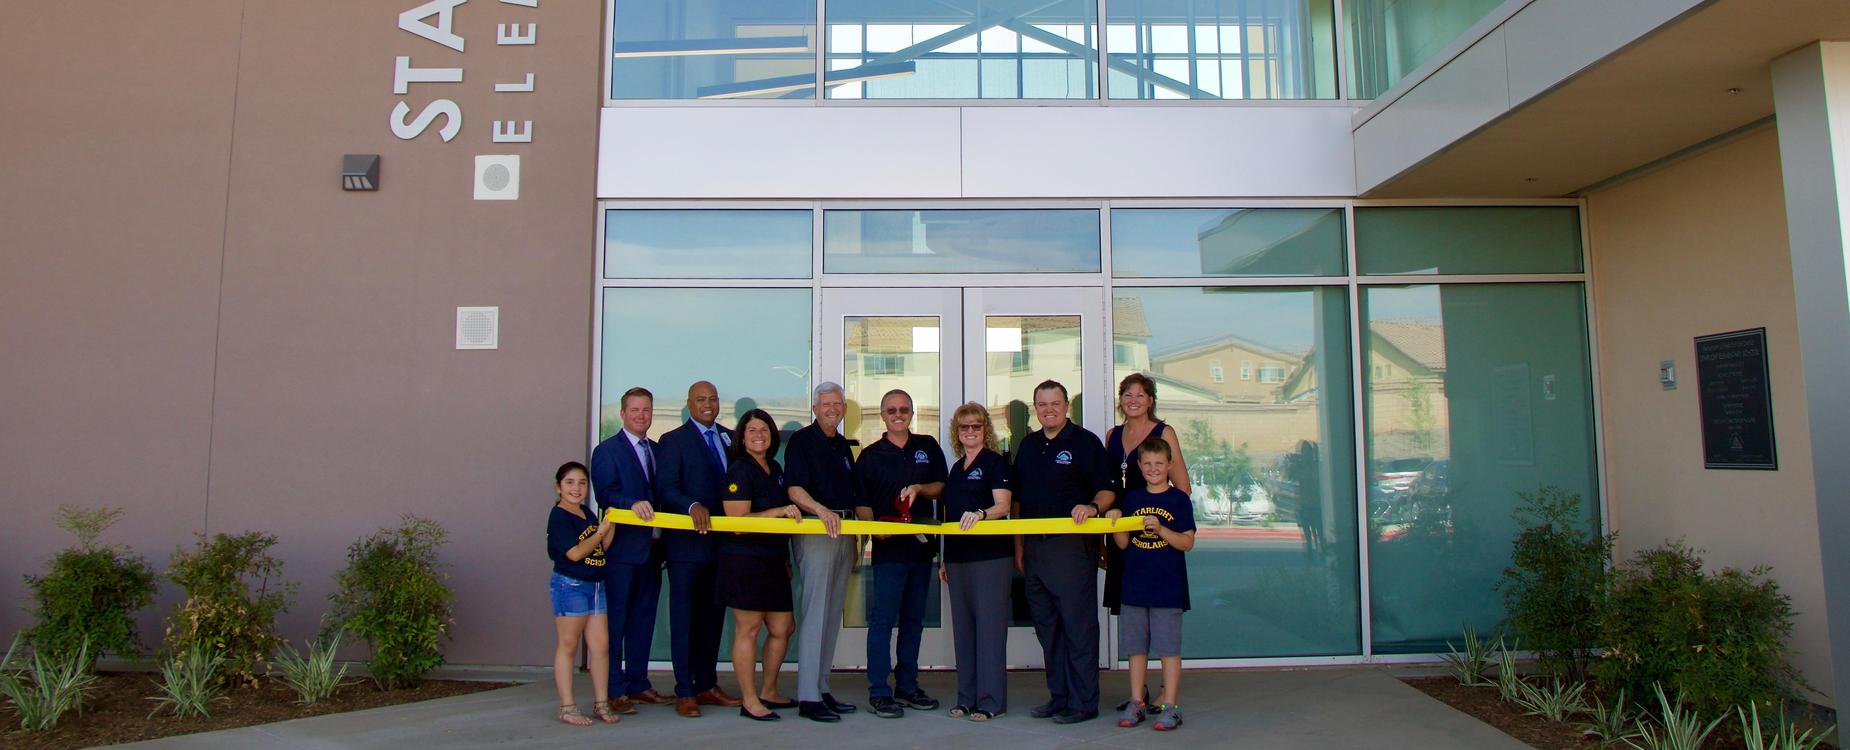 Starlight Ribbon Cutting Ceremony